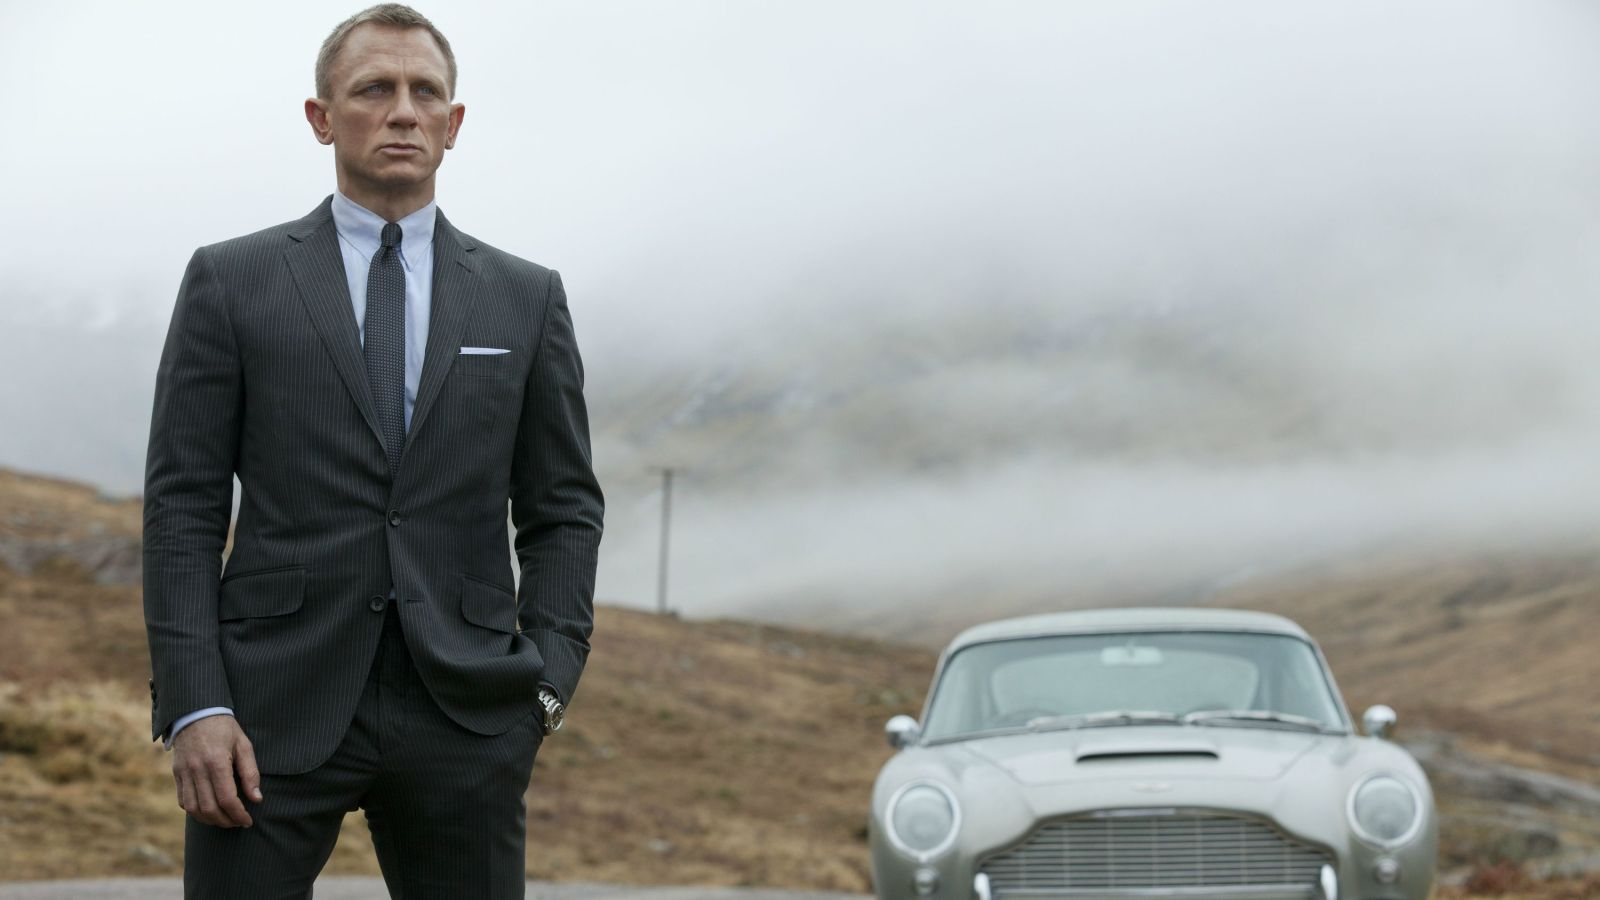 5_lessons_sales_professionals_can_learn_from_007.jpg